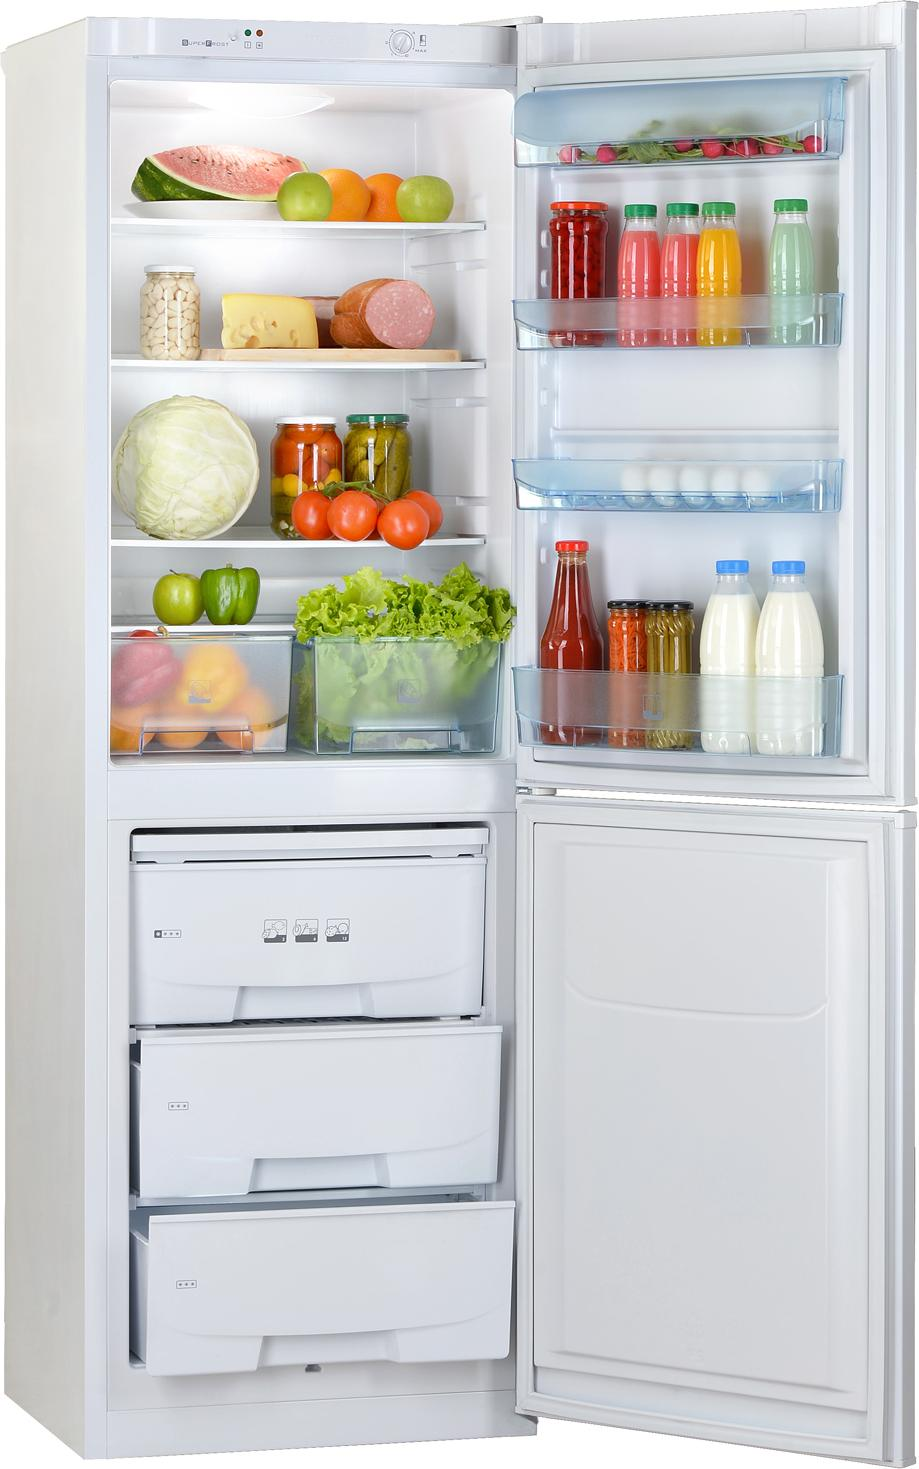 Specifications, models and reviews about Pozis refrigerators 47